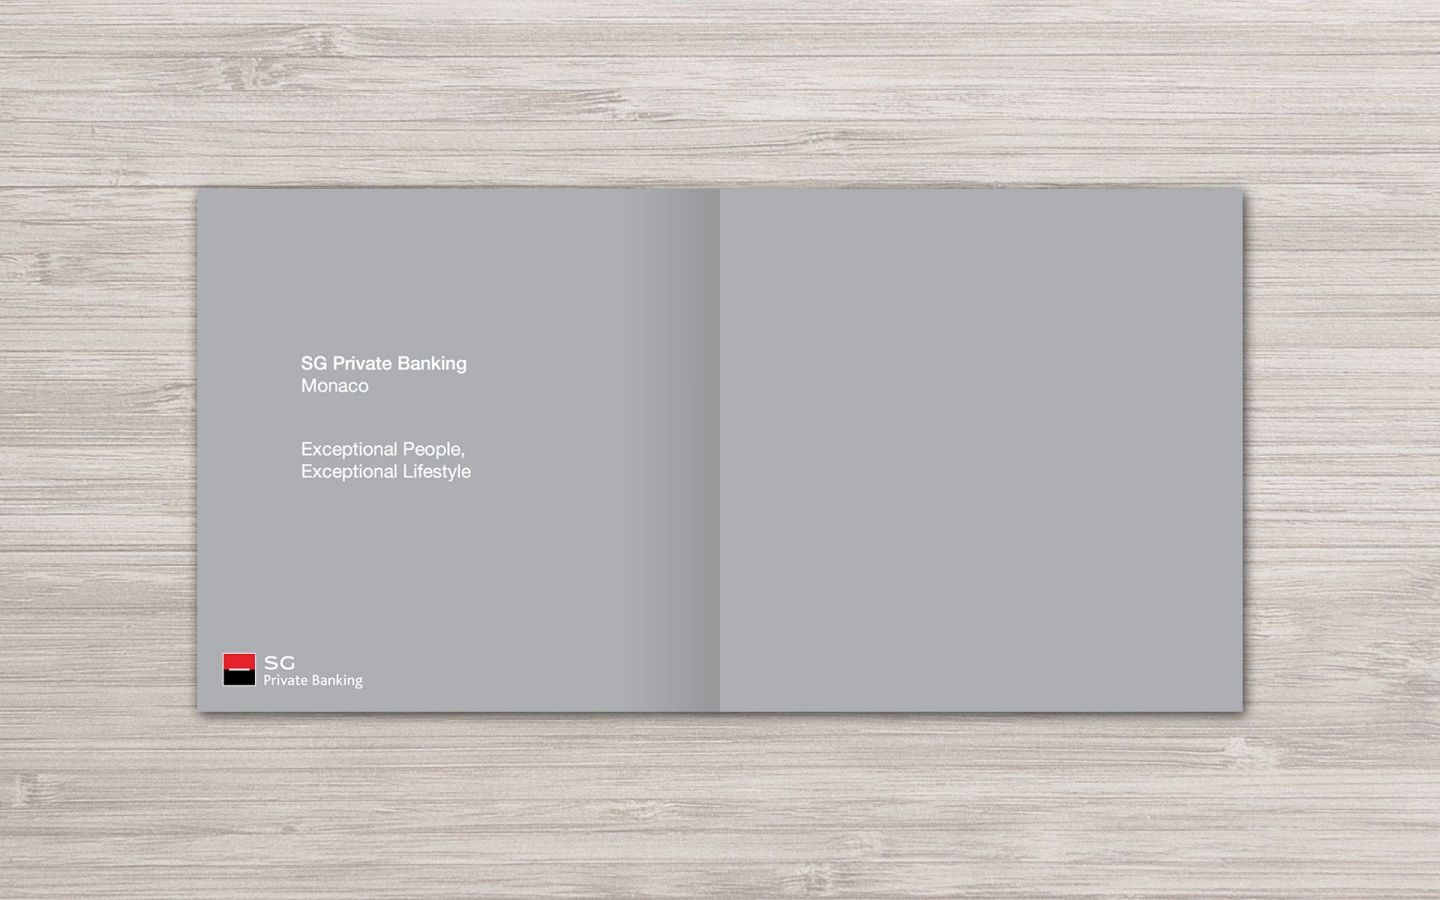 SG Private Banking (Monaco) Branding Project by Crevisio